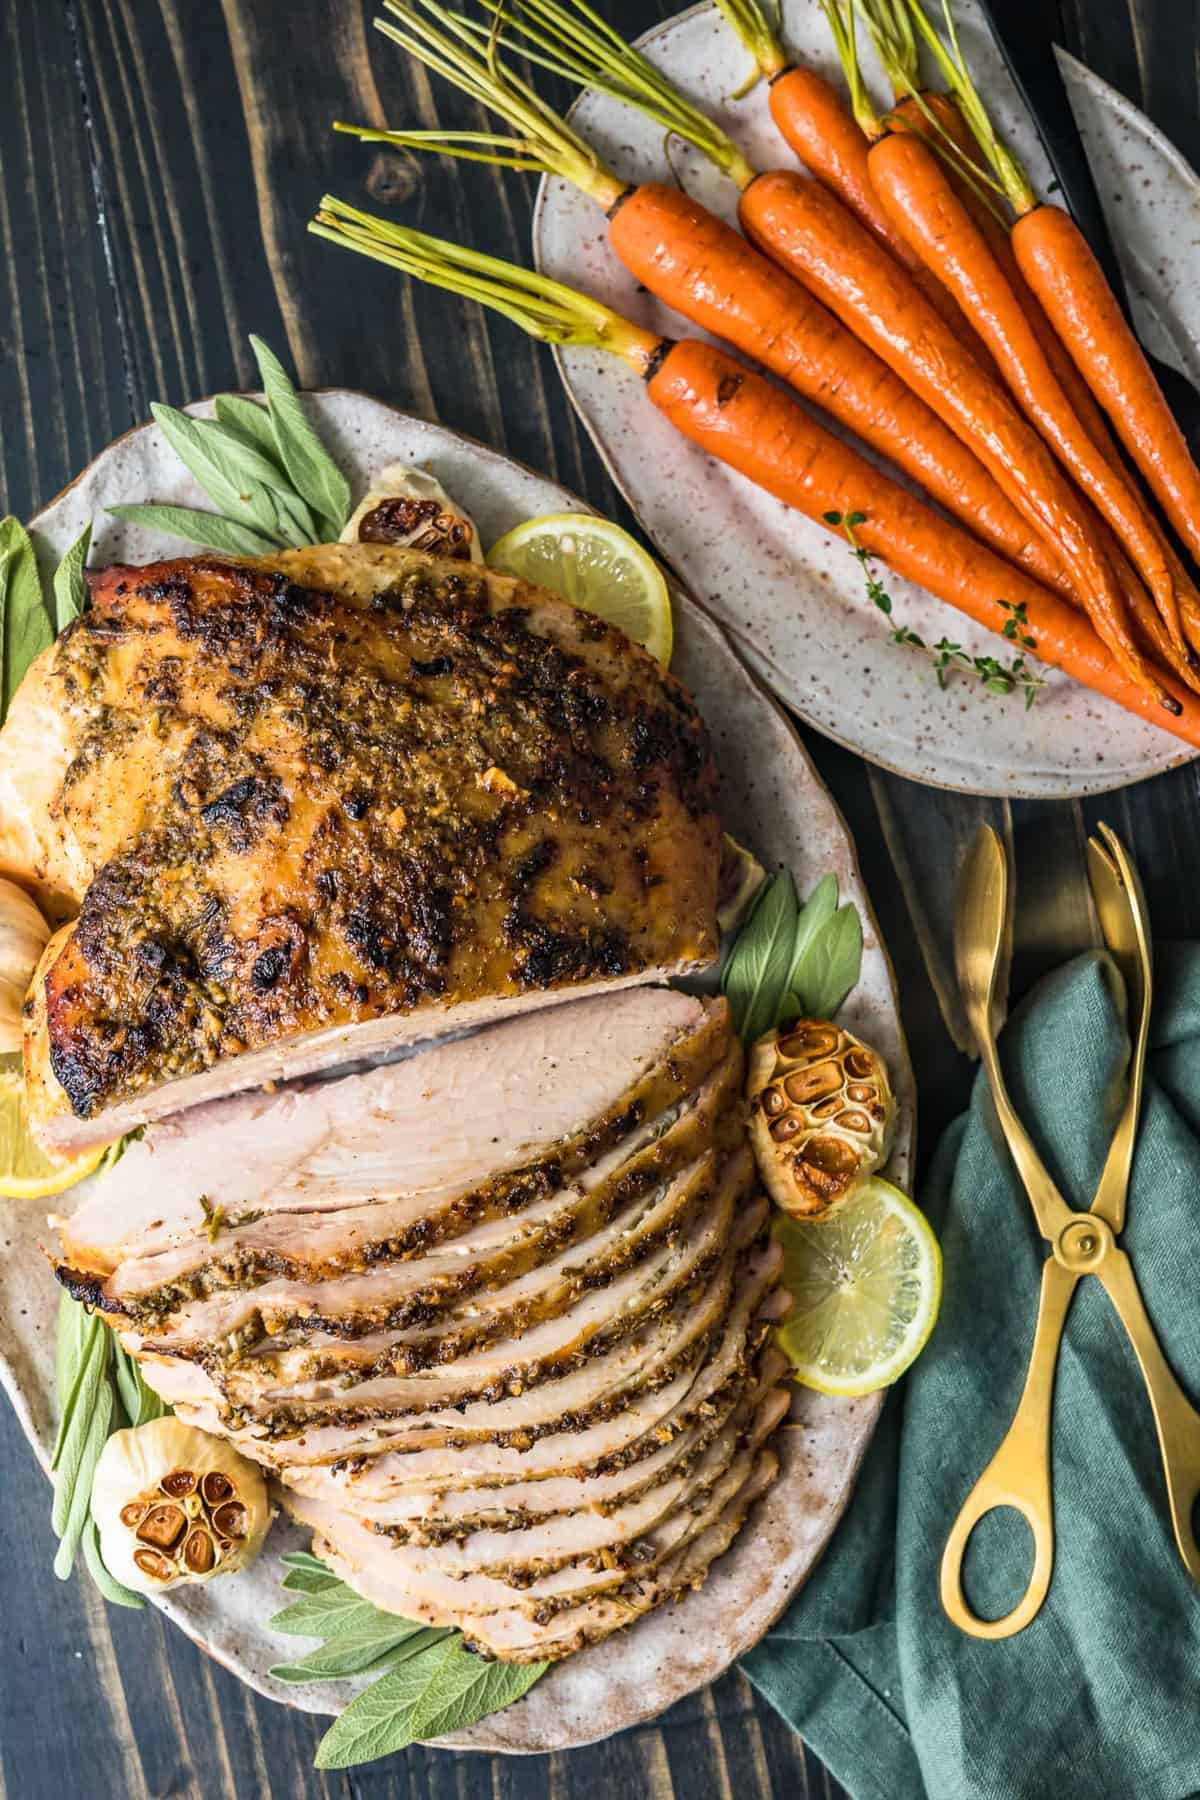 Turkey breast served with roasted carrots